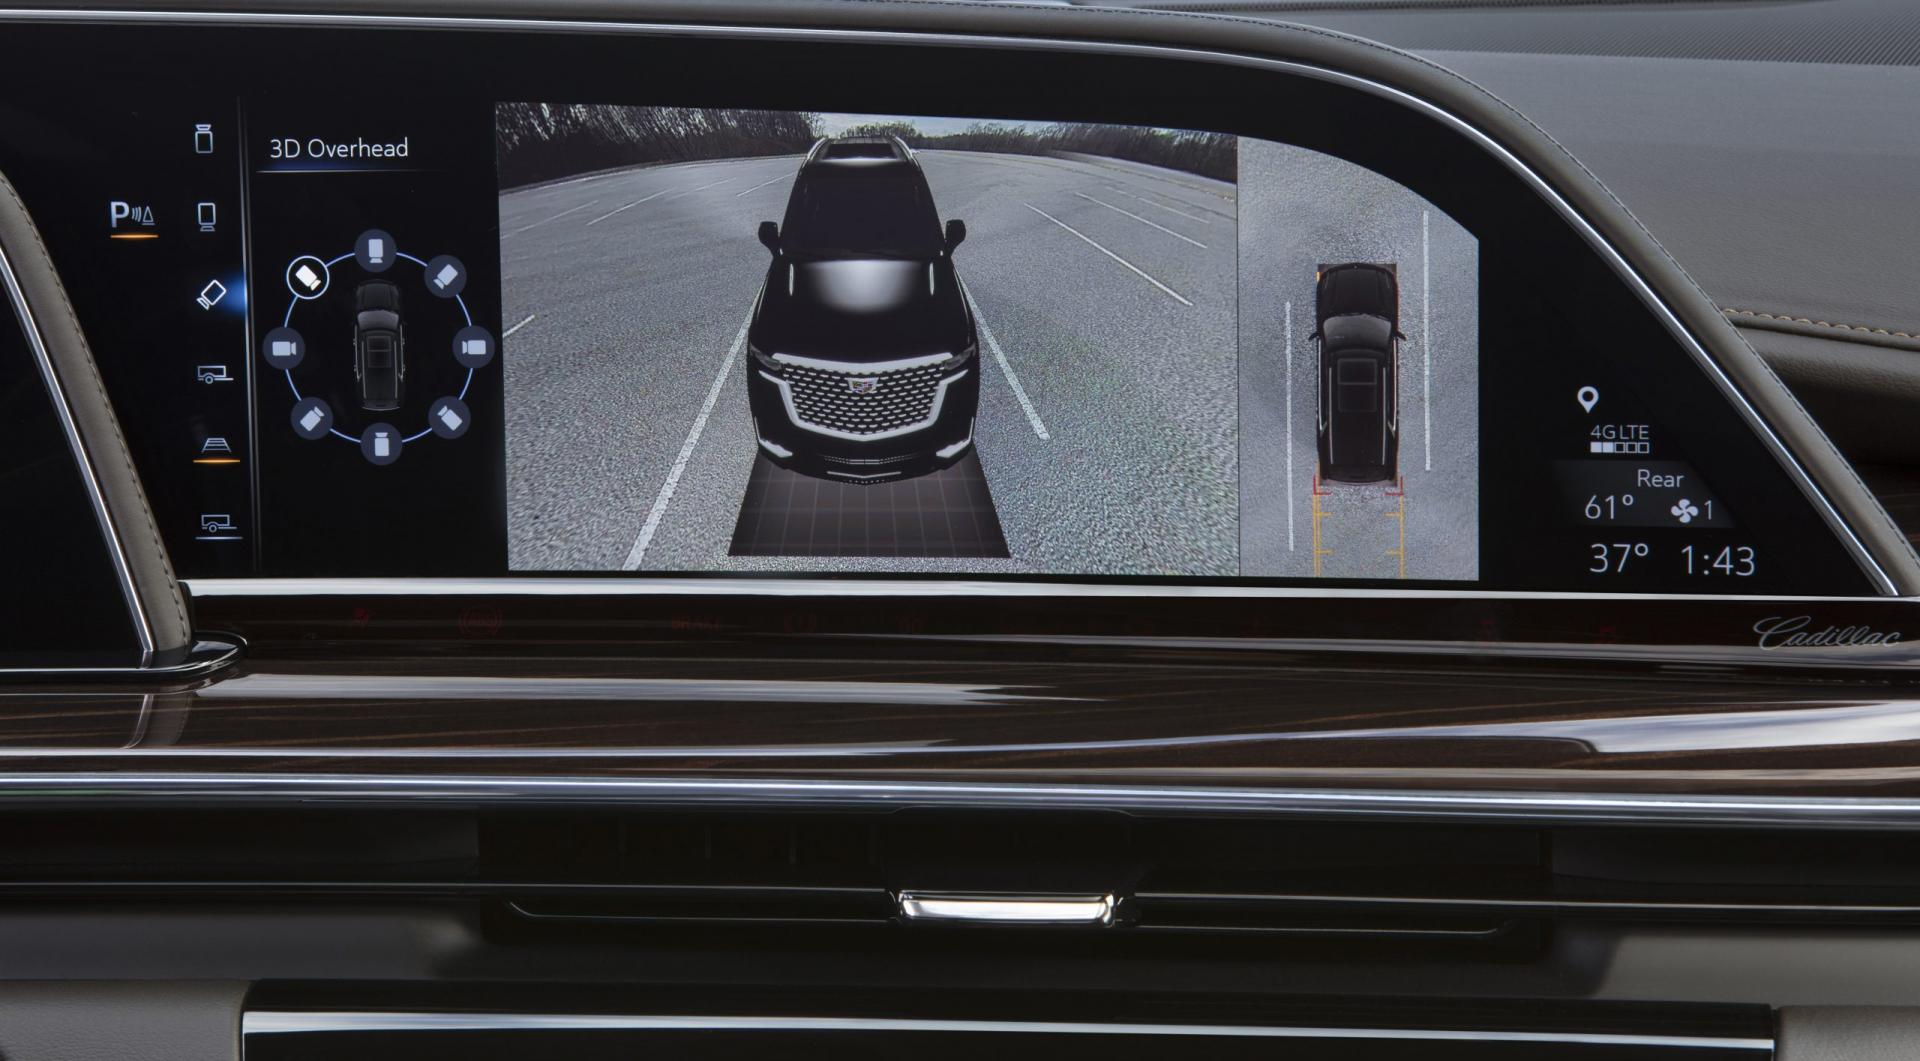 Cadillac Escalade 2021 scherm display surround parkeren